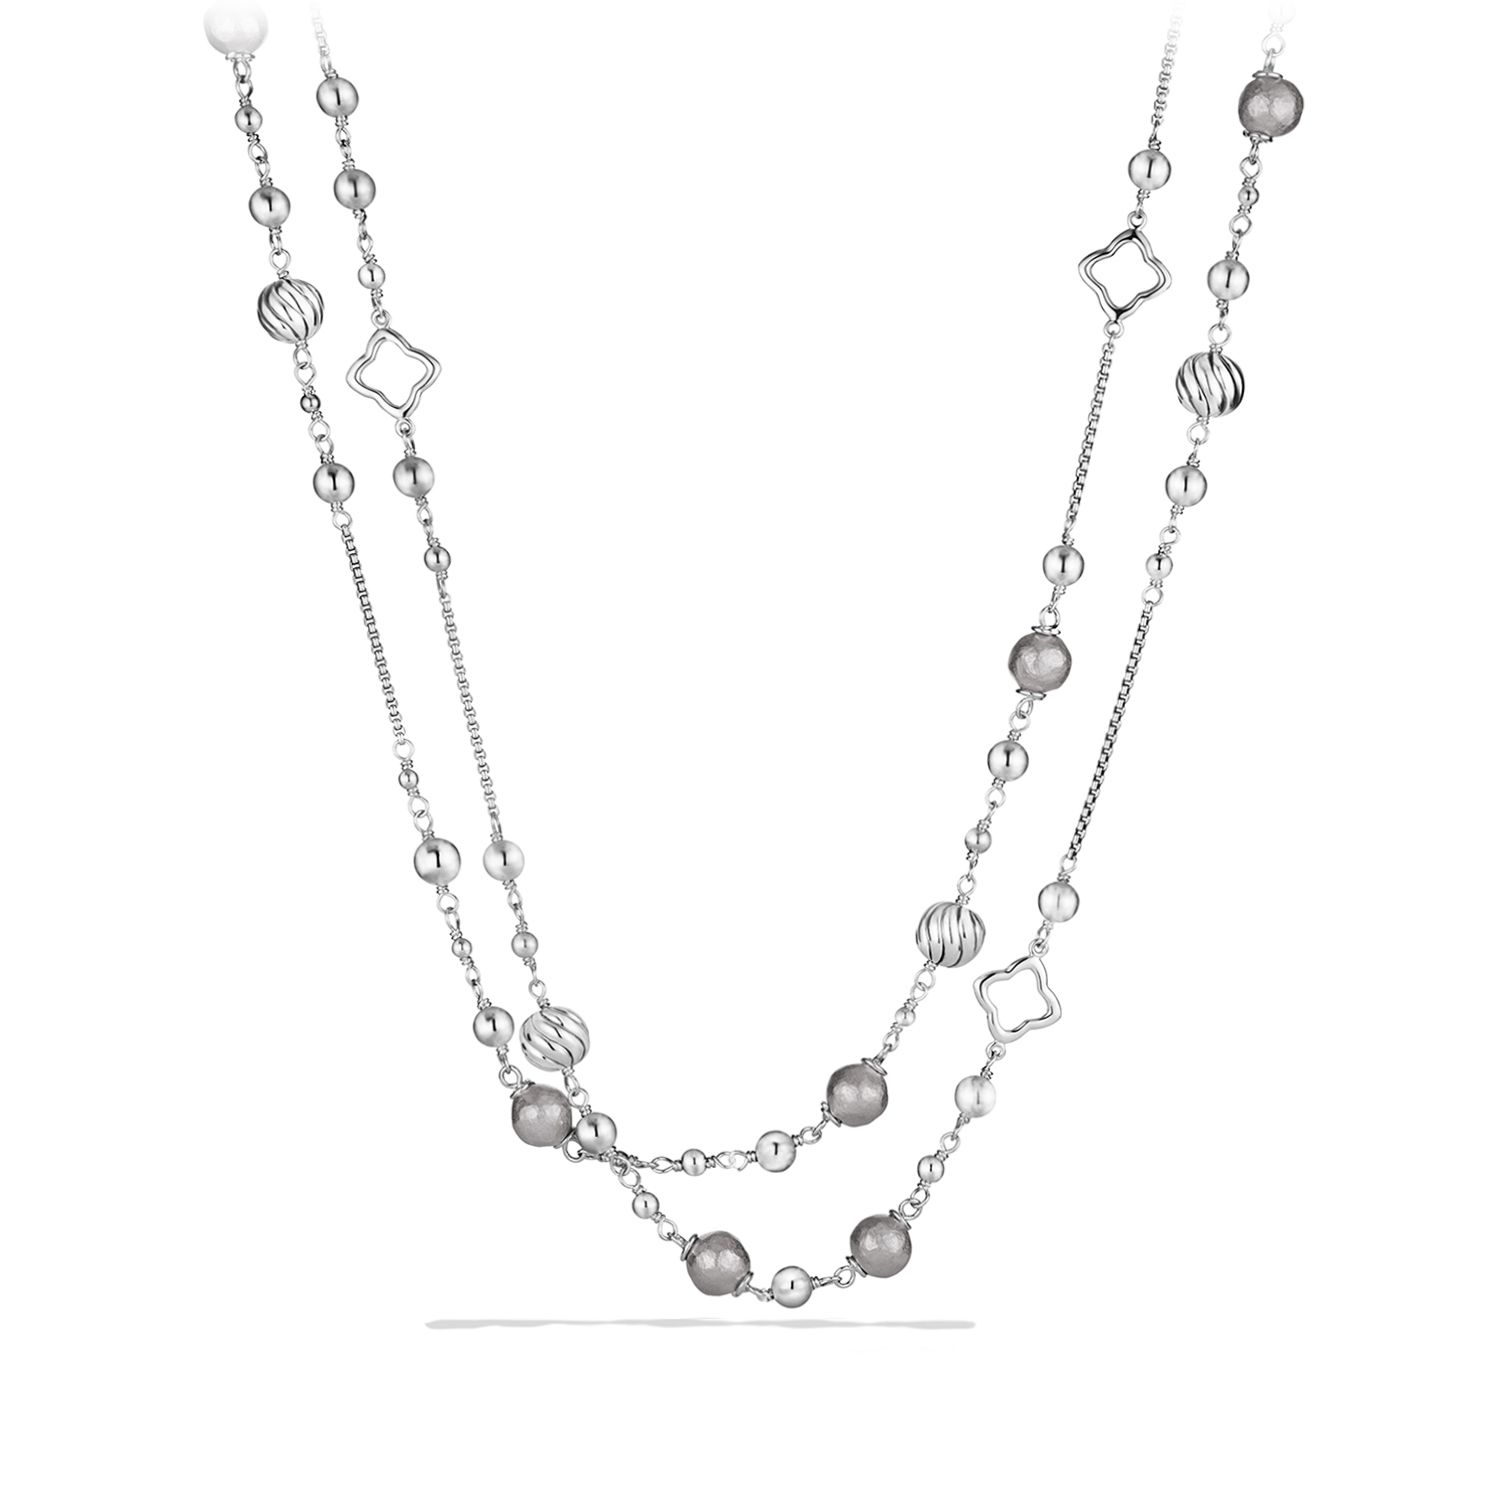 DY Elements Chain Necklace